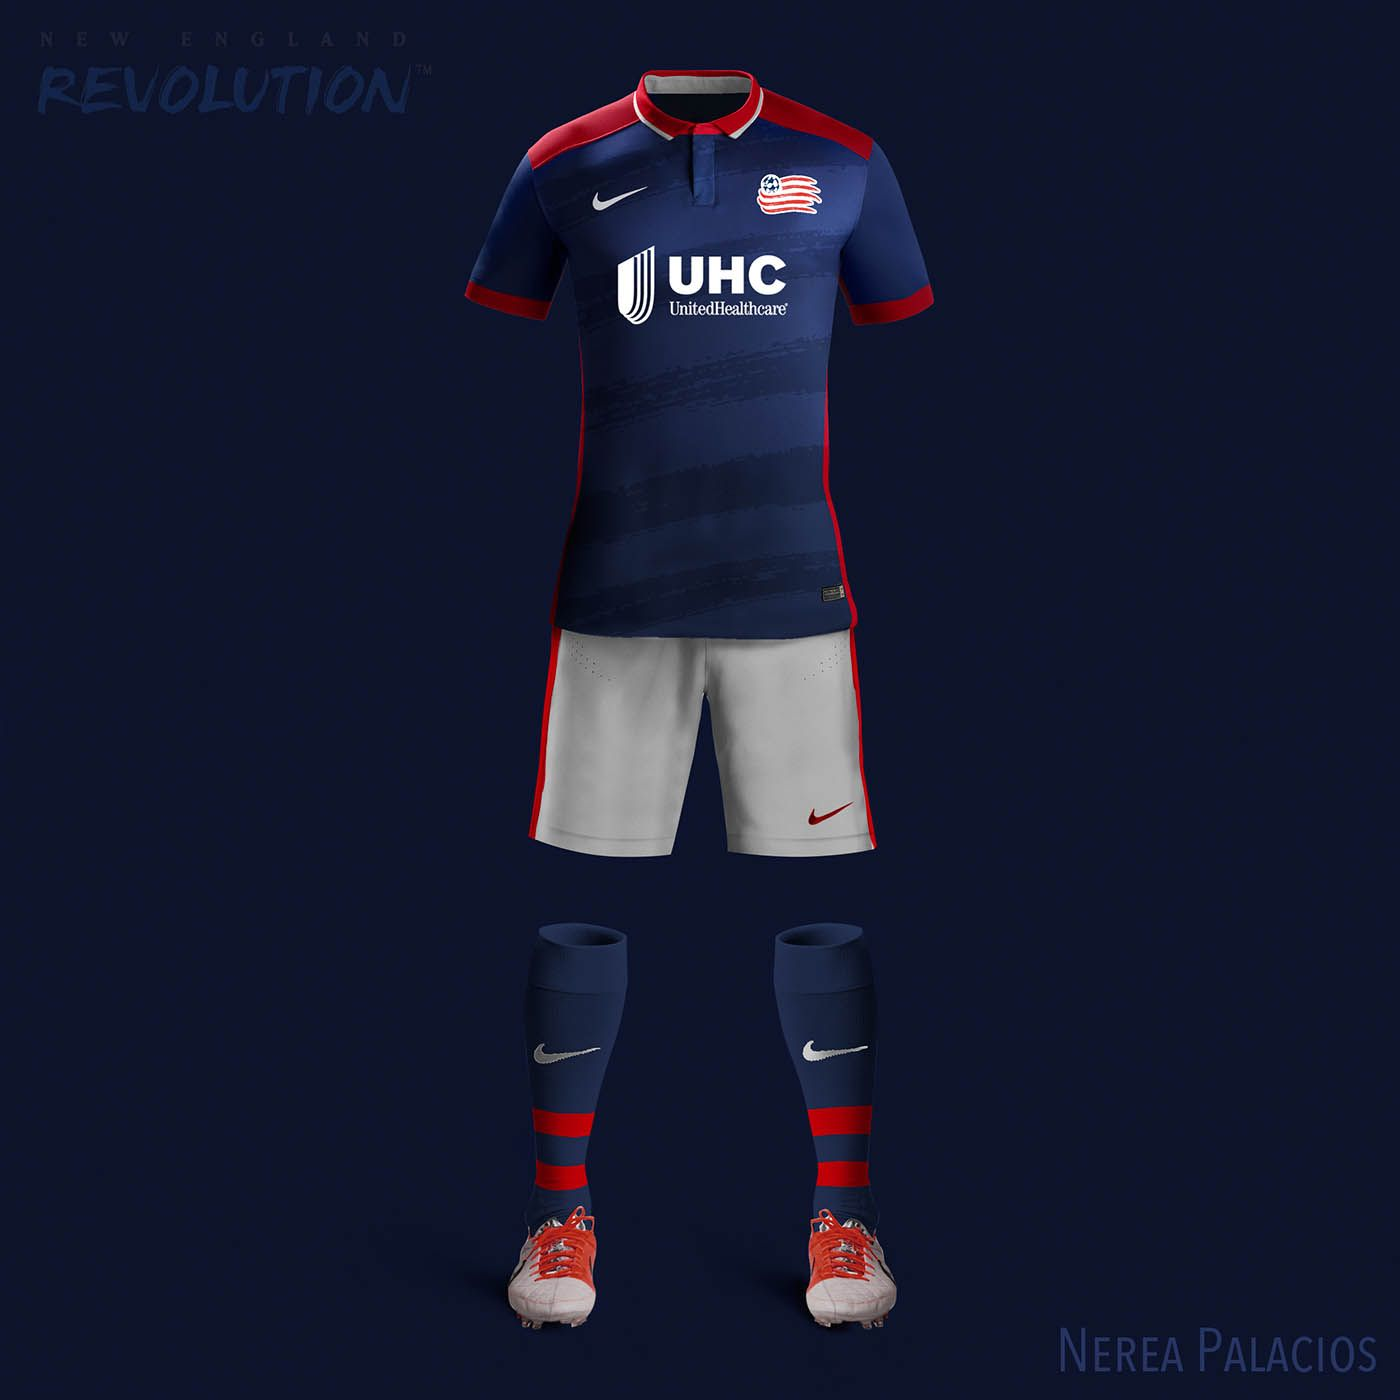 9c7a4091ad1 Nike MLS Concept Kits by Nerea Palacios | New England Revolution ...